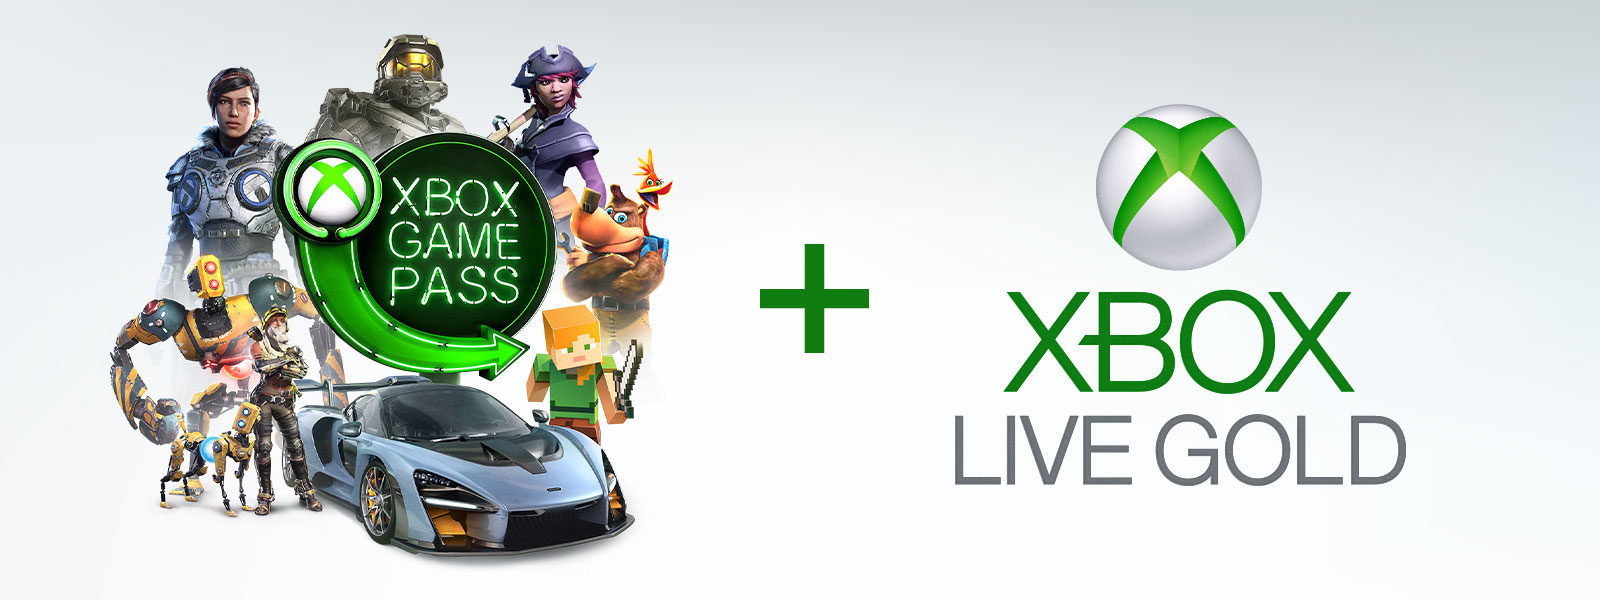 Xbox Live Gold and Xbox Game Pass neon sign surrounded by characters from Sea of Thieves, ReCORE, Forza Horizon 4, HALO, Banjo Kazooie, and a Minecraft blockhead.